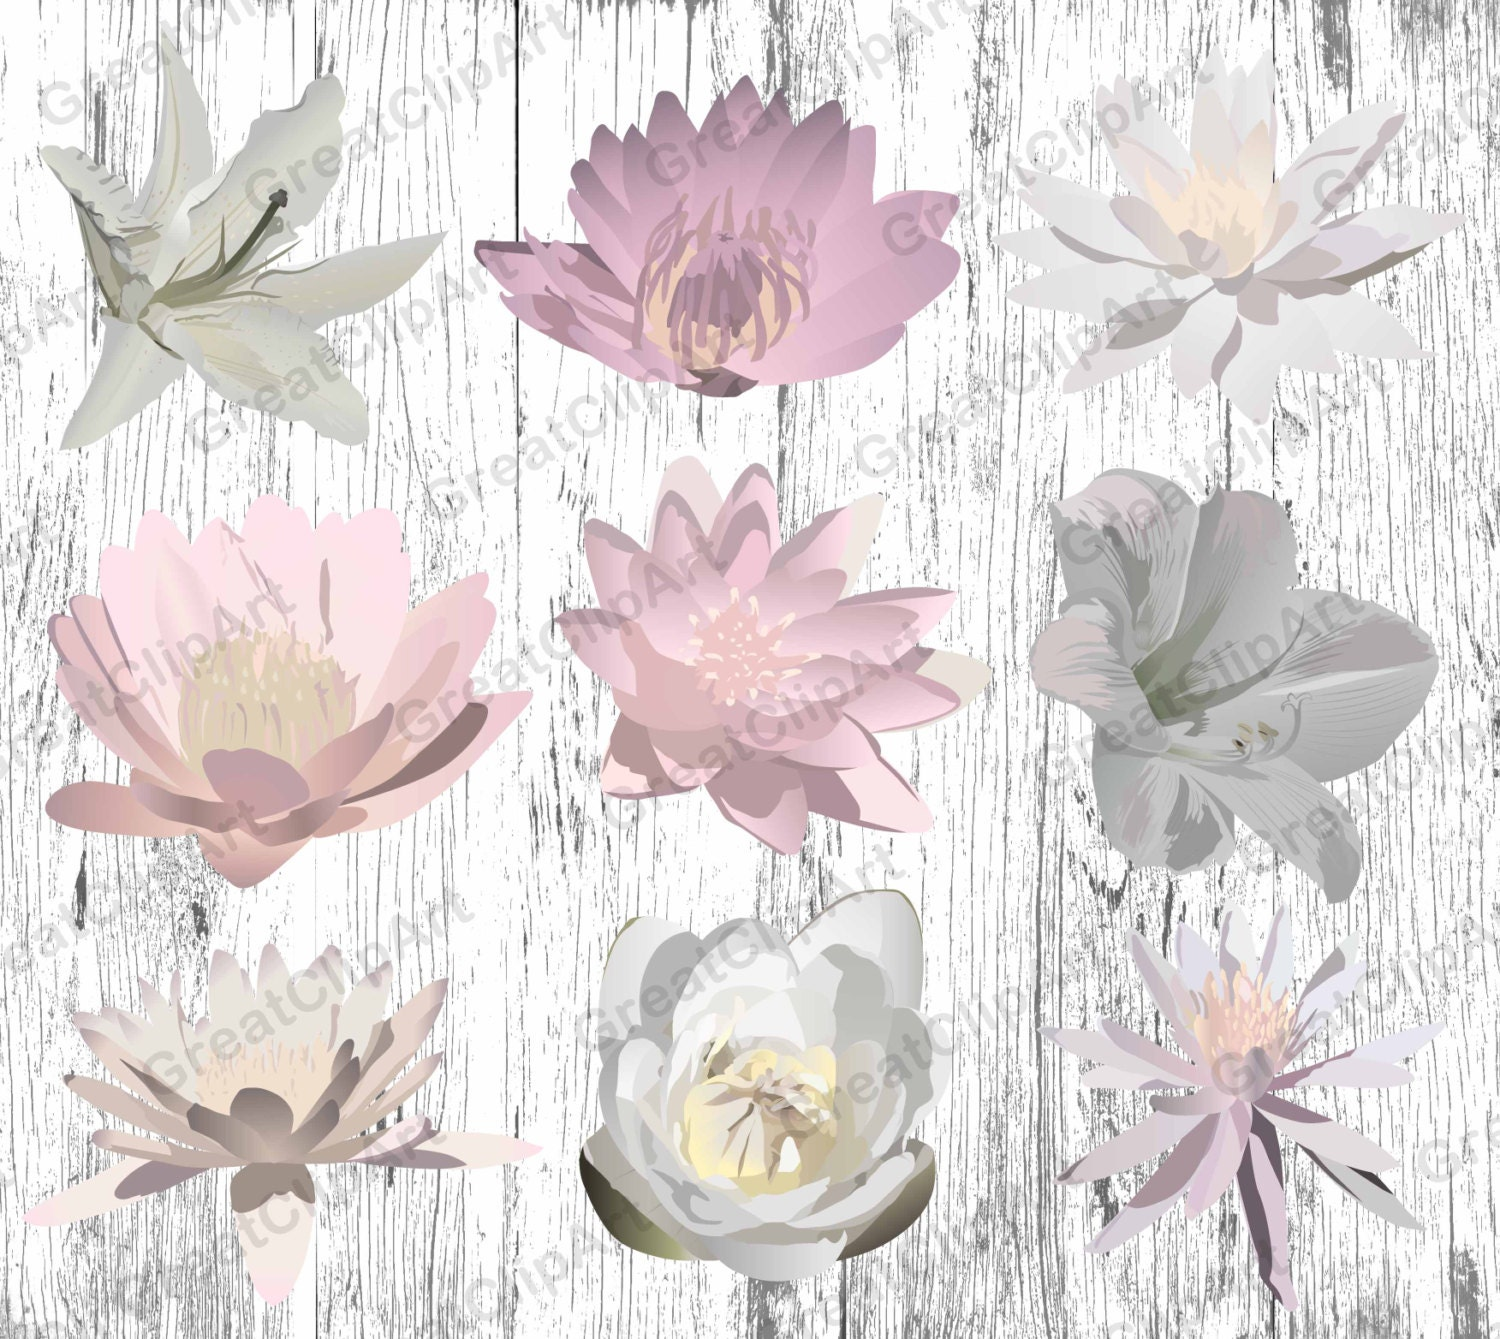 9 Flowers Clipart Set Lotus Flowers Clipart Painted Flowers Etsy